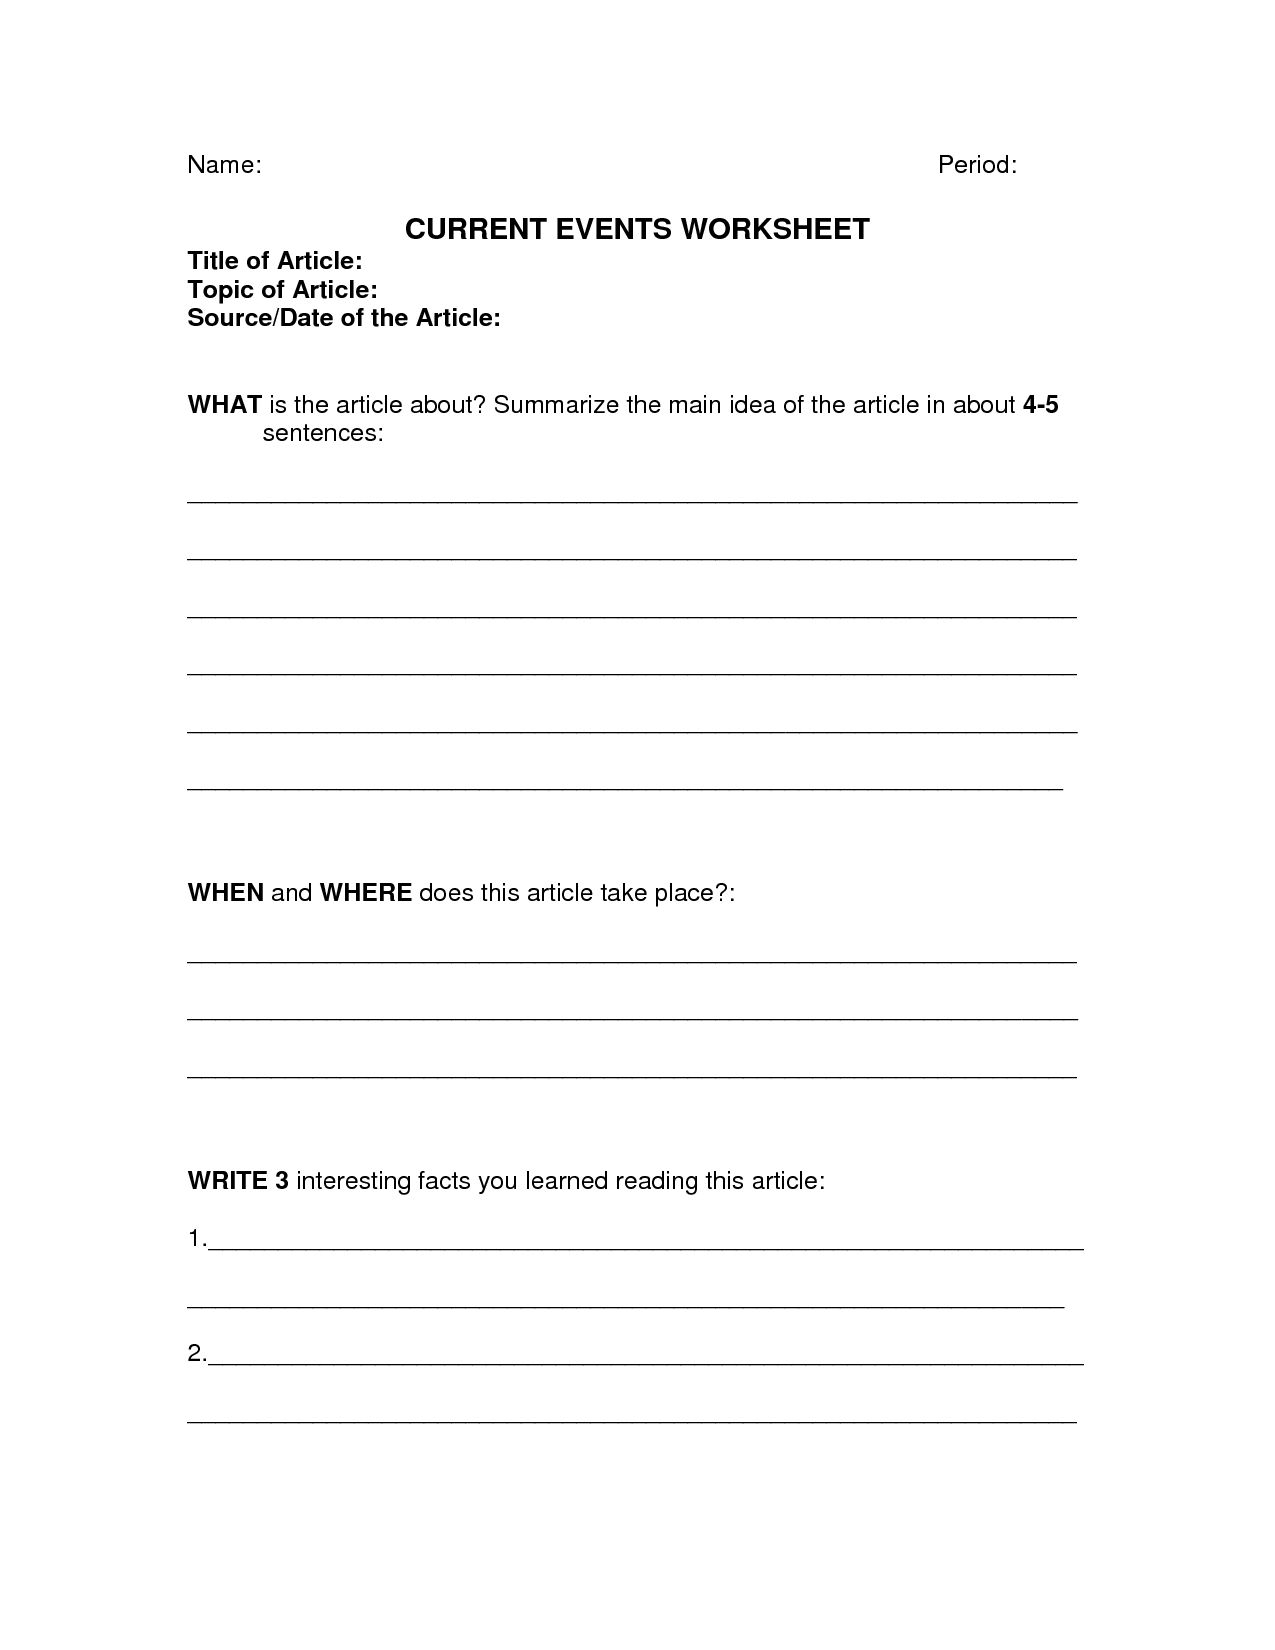 write an article based on current event